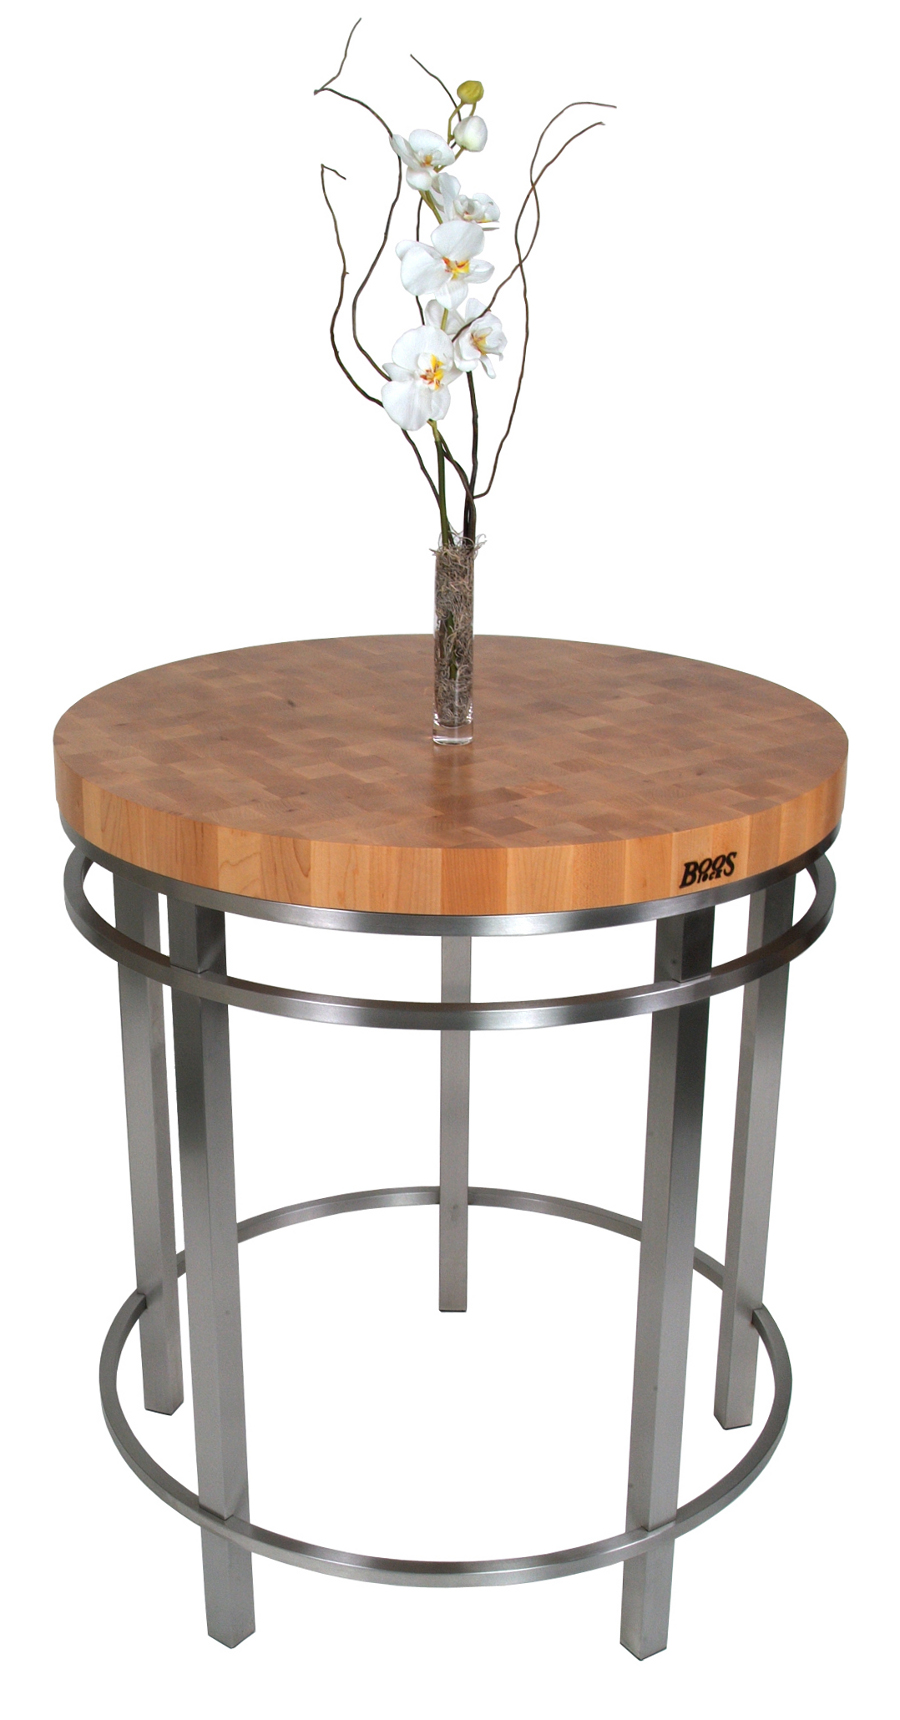 "Boos Maple & Stainless Steel 32"" Round Metro Oasis Table"